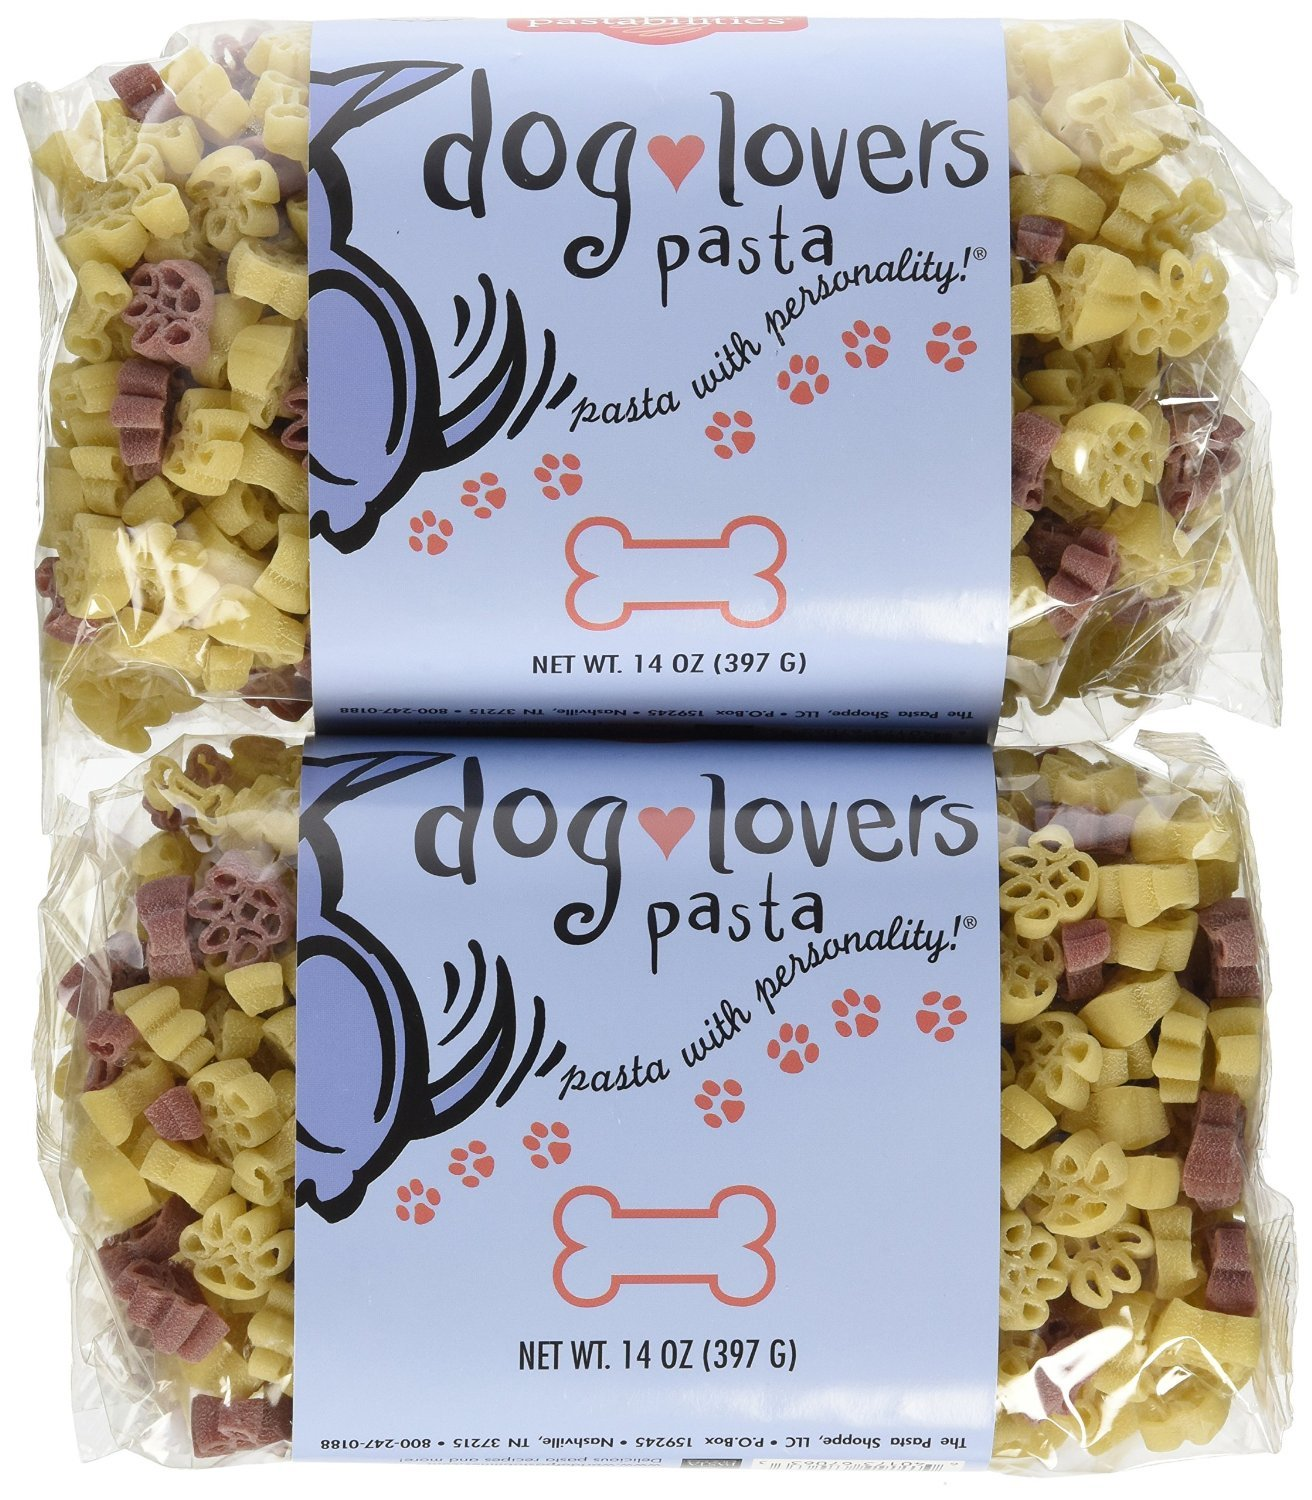 cool dog lover gifts